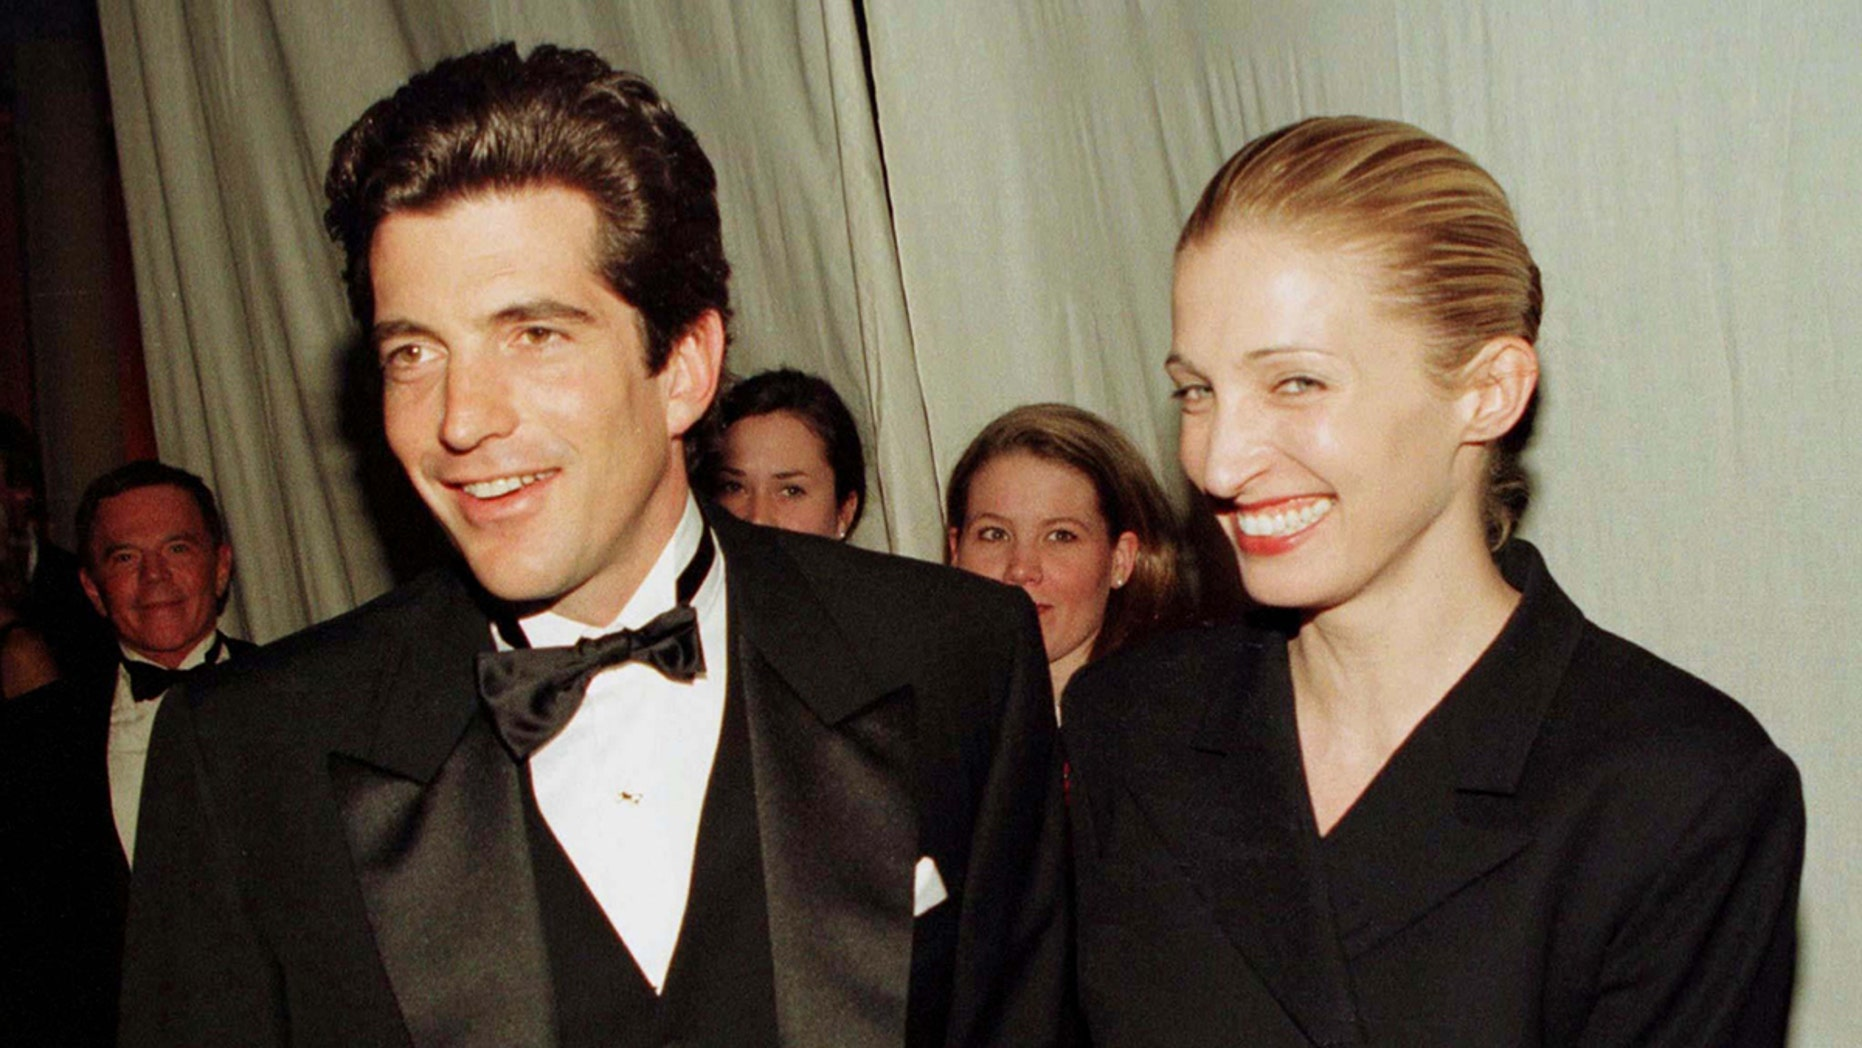 John F. Kennedy Jr. and his wife Carolyn Bessette's wedding will be the subject of a new documentary special from TLC.